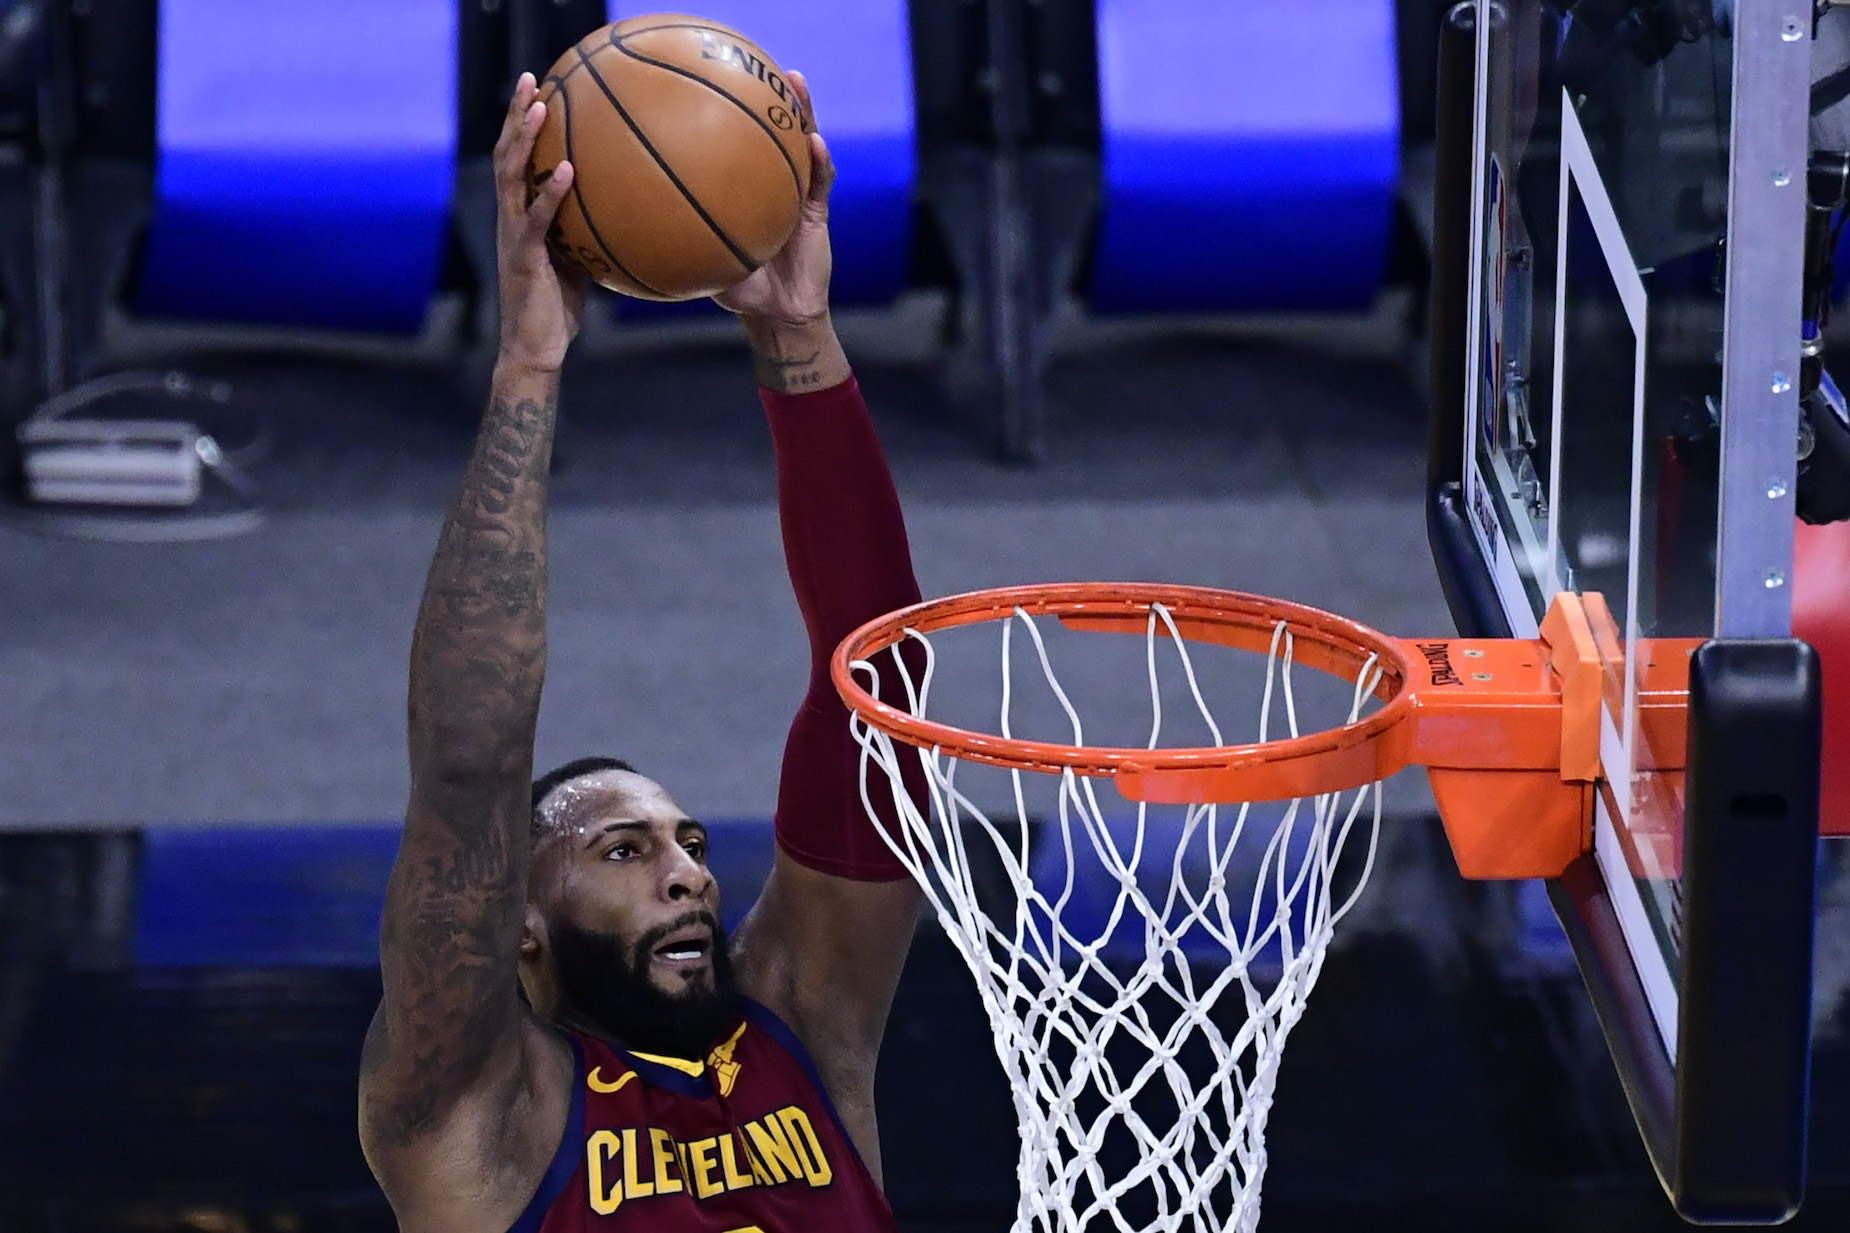 LA Lakers center Andre Drummond, then of the Cleveland Cavaliers, dunks during an NBA game.